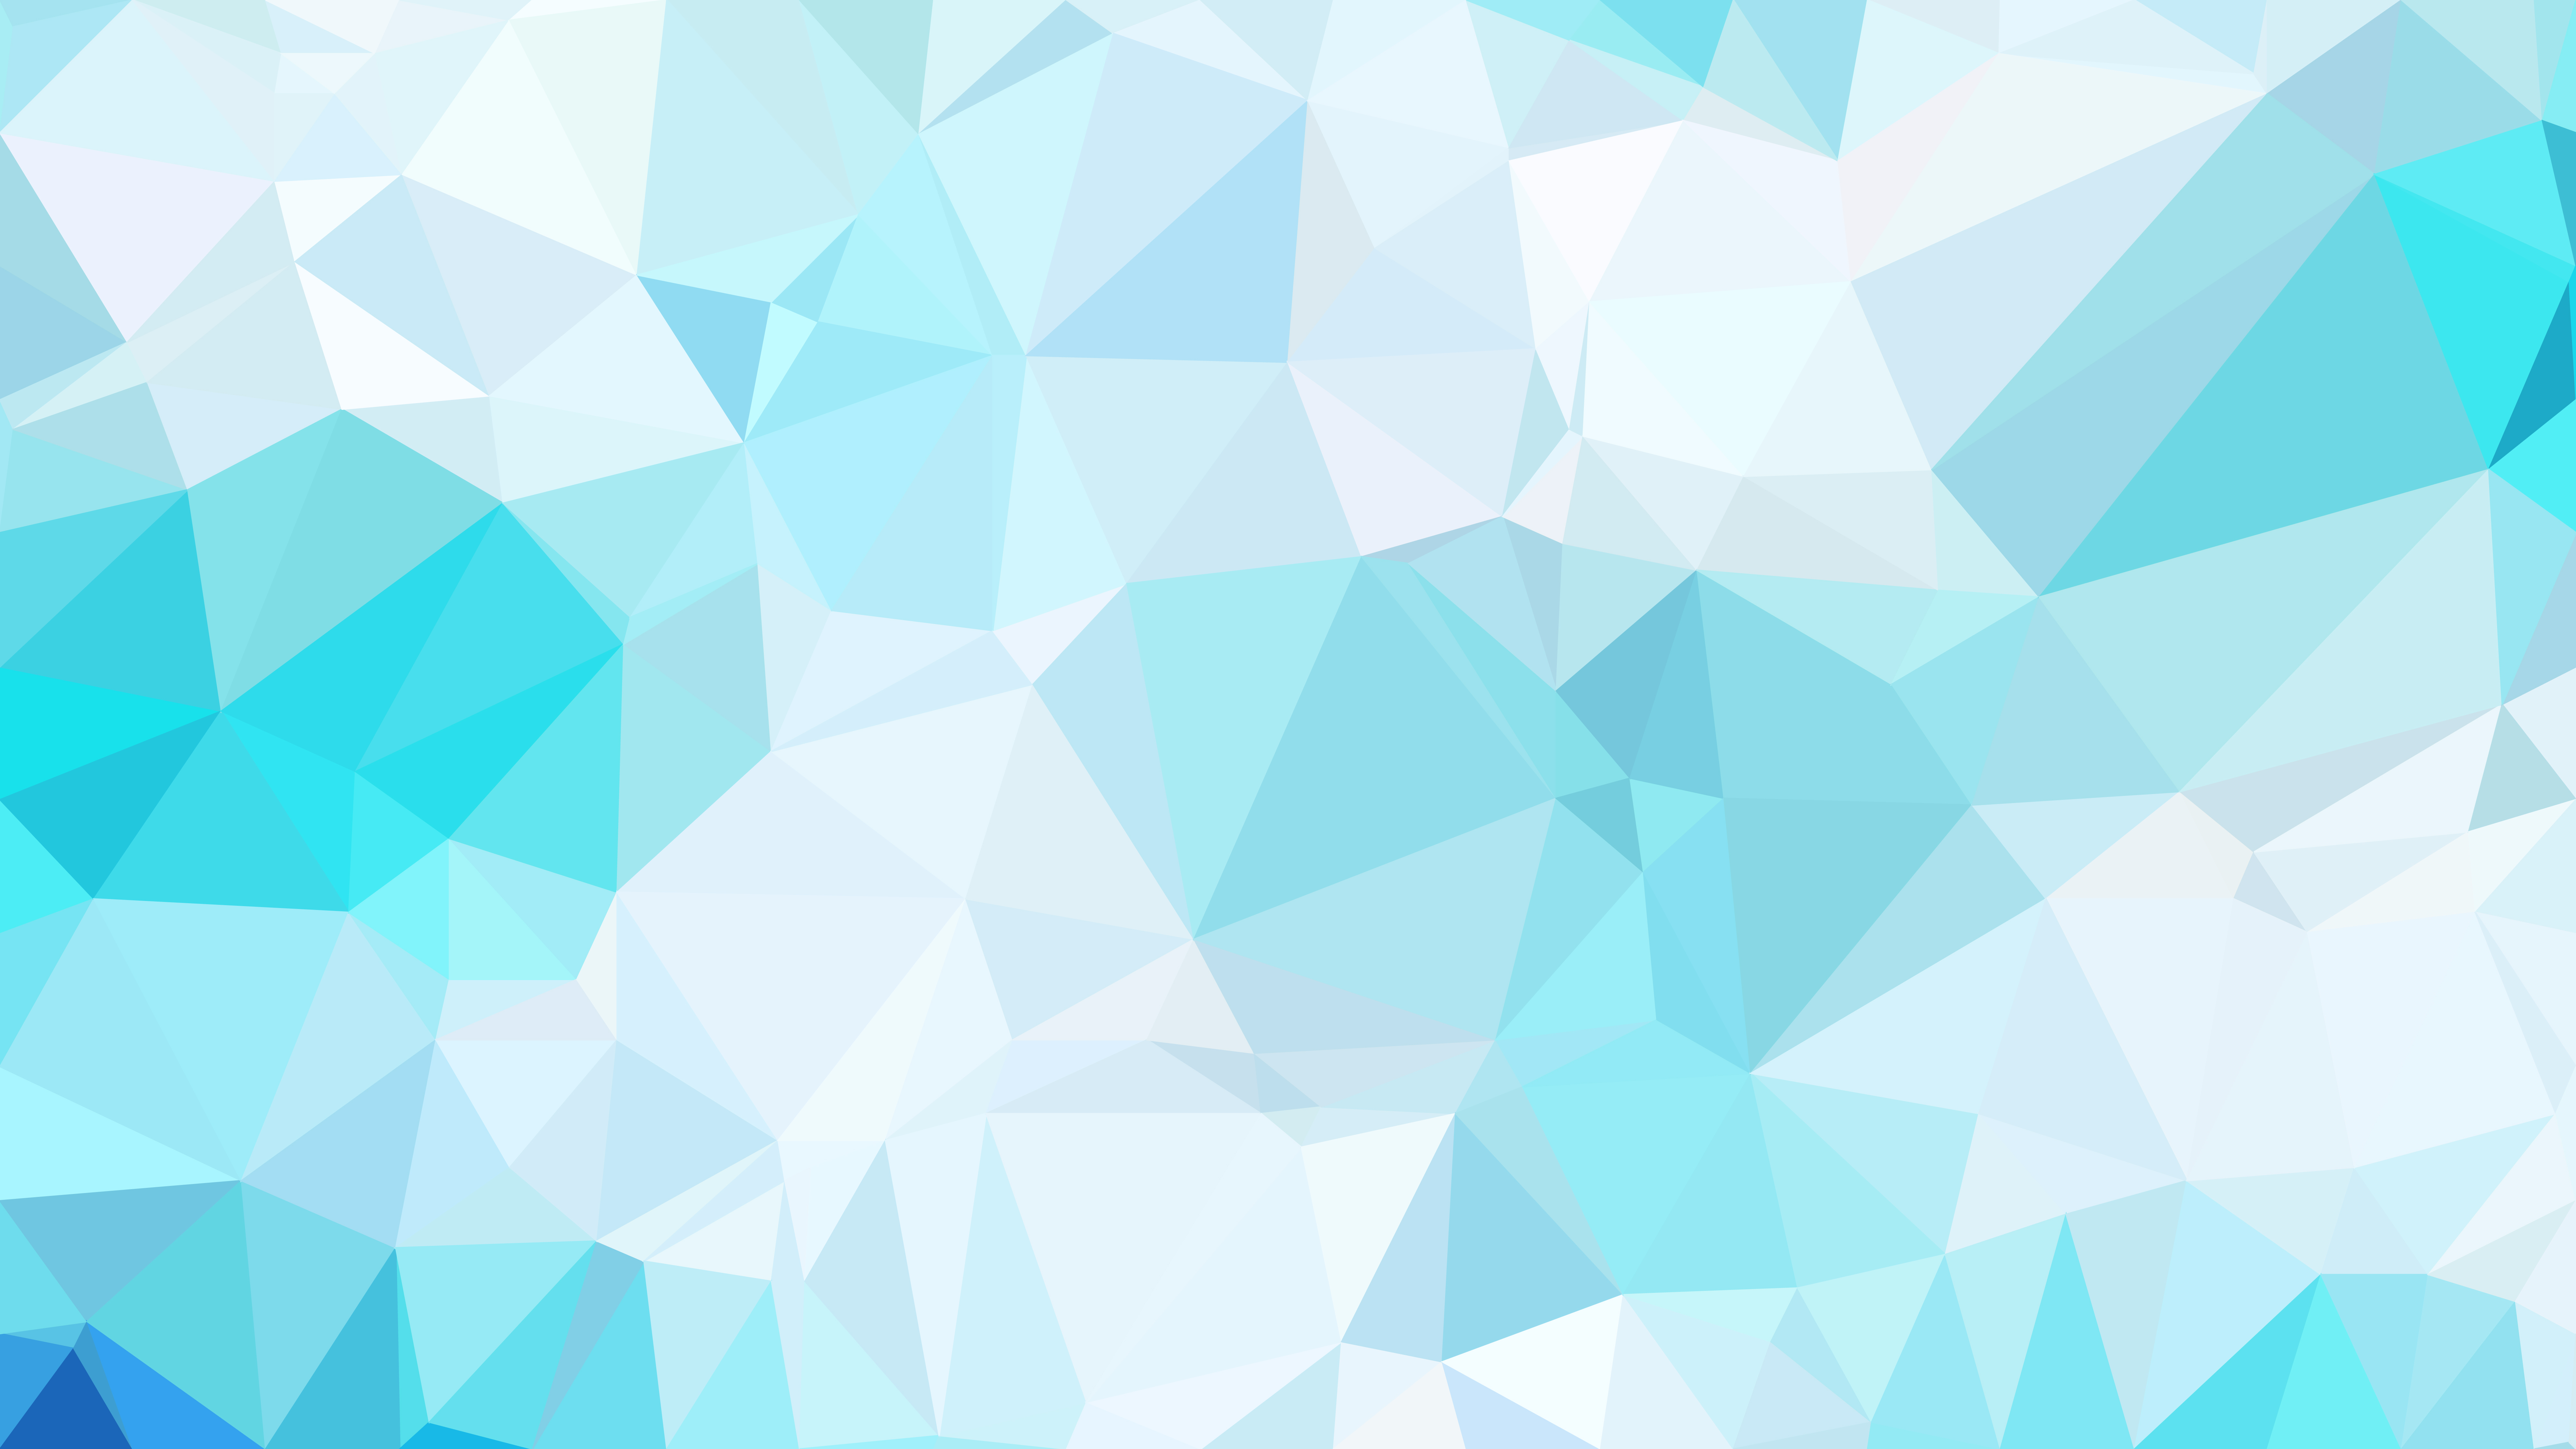 Blue and White Polygon Pattern Background Vector Art 8000x4500